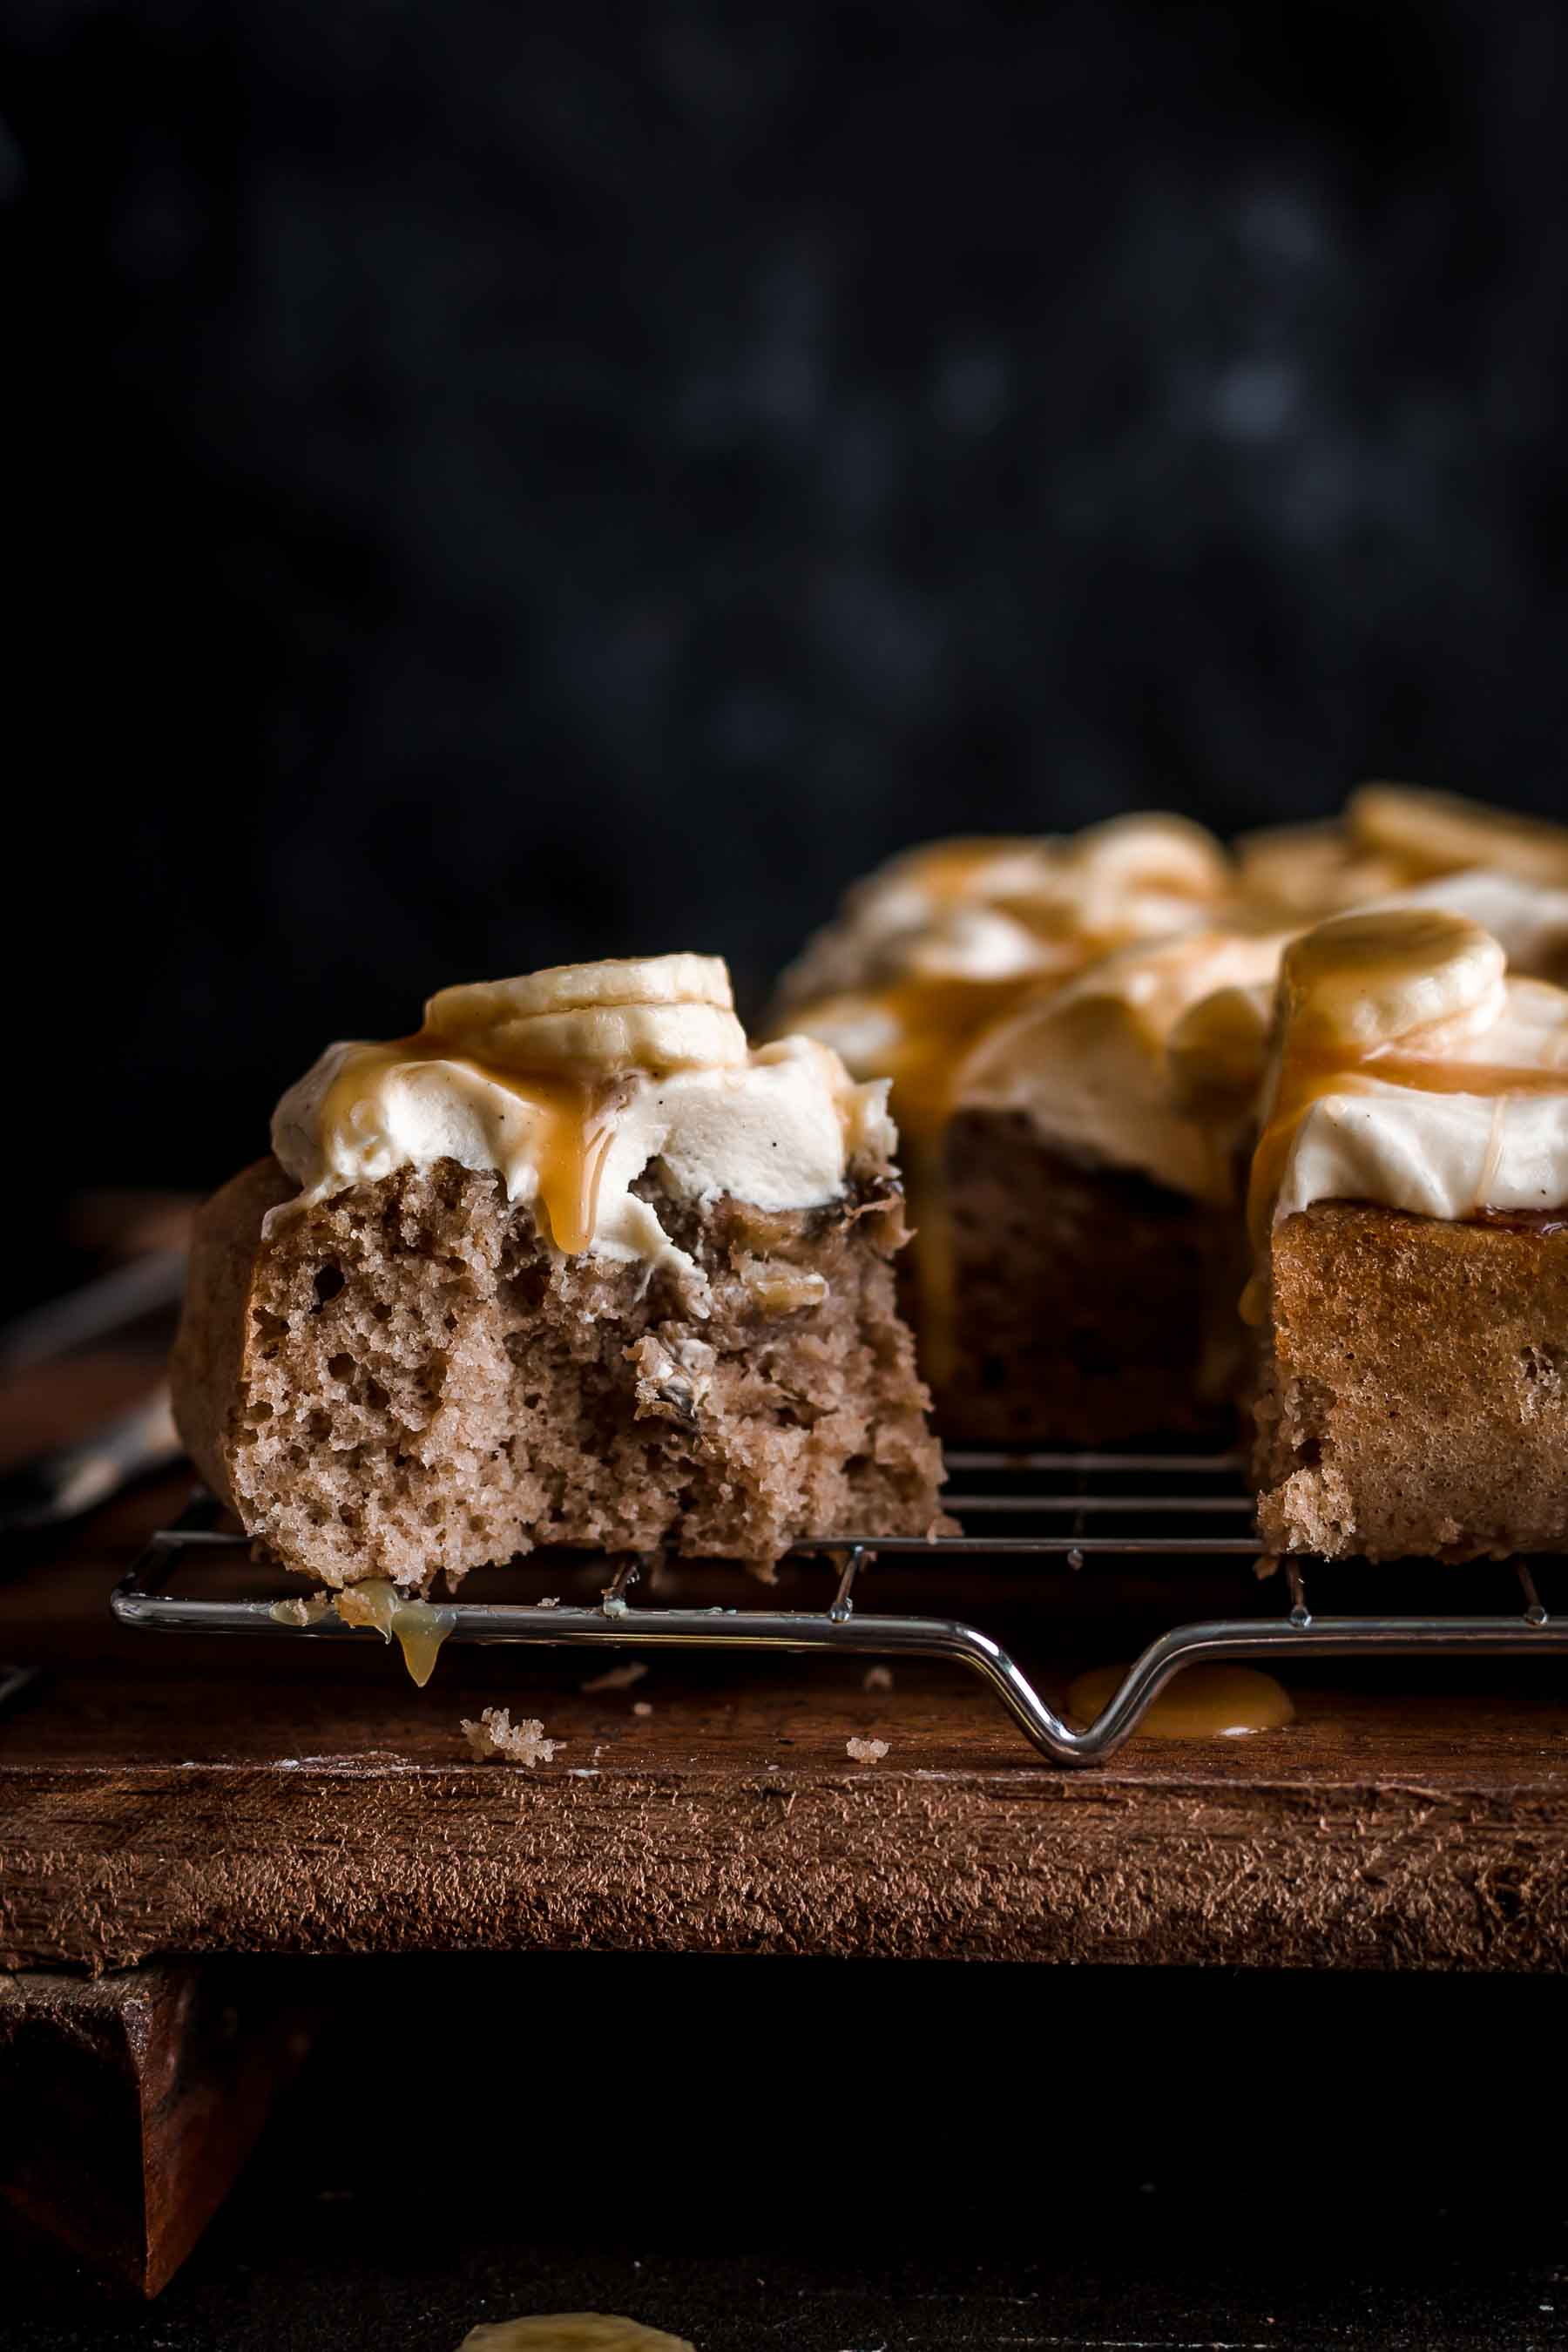 This Banoffee Cake is a dreamy combination of banana cake and salted caramel cream cheese frosting.Banoffee Cake Recipe by Also The Crumbs Please#banoffee #cake #banana #caramel #creamcheesefrosting #banoffeecake